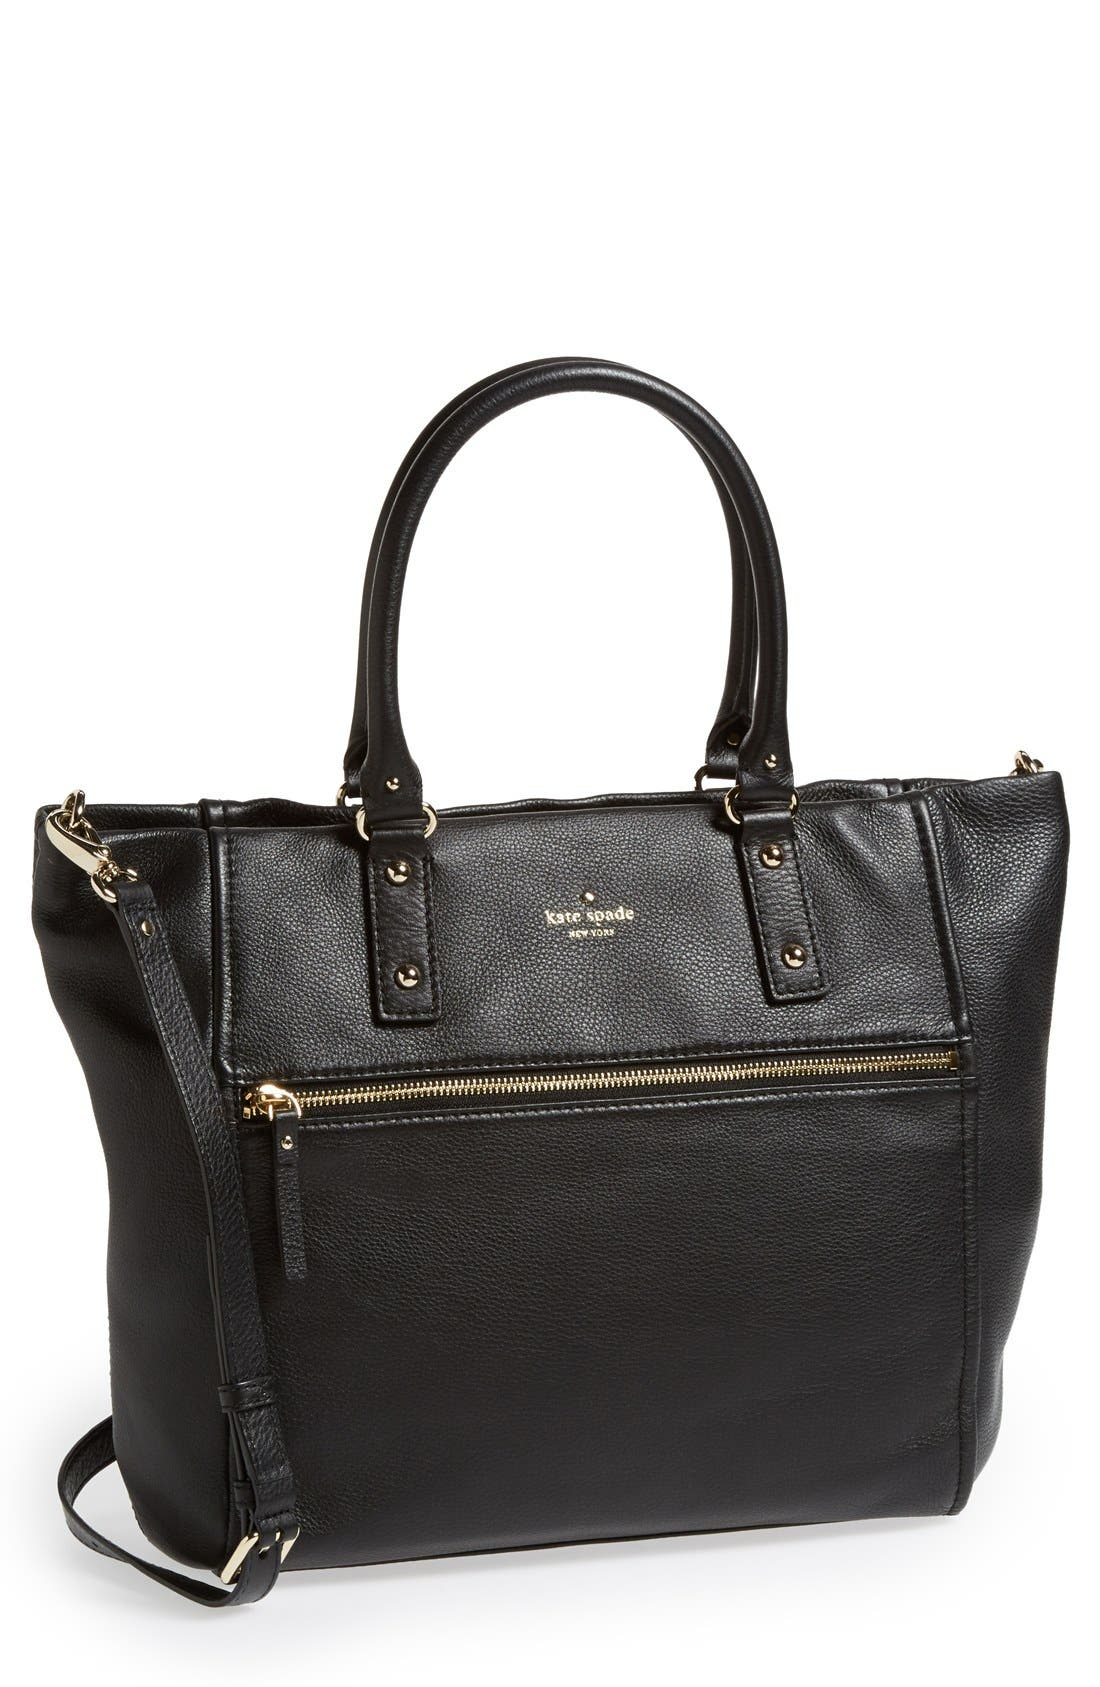 Alternate Image 1 Selected - kate spade new york 'cobble hill - lilla' leather tote (Nordstrom Exclusive)